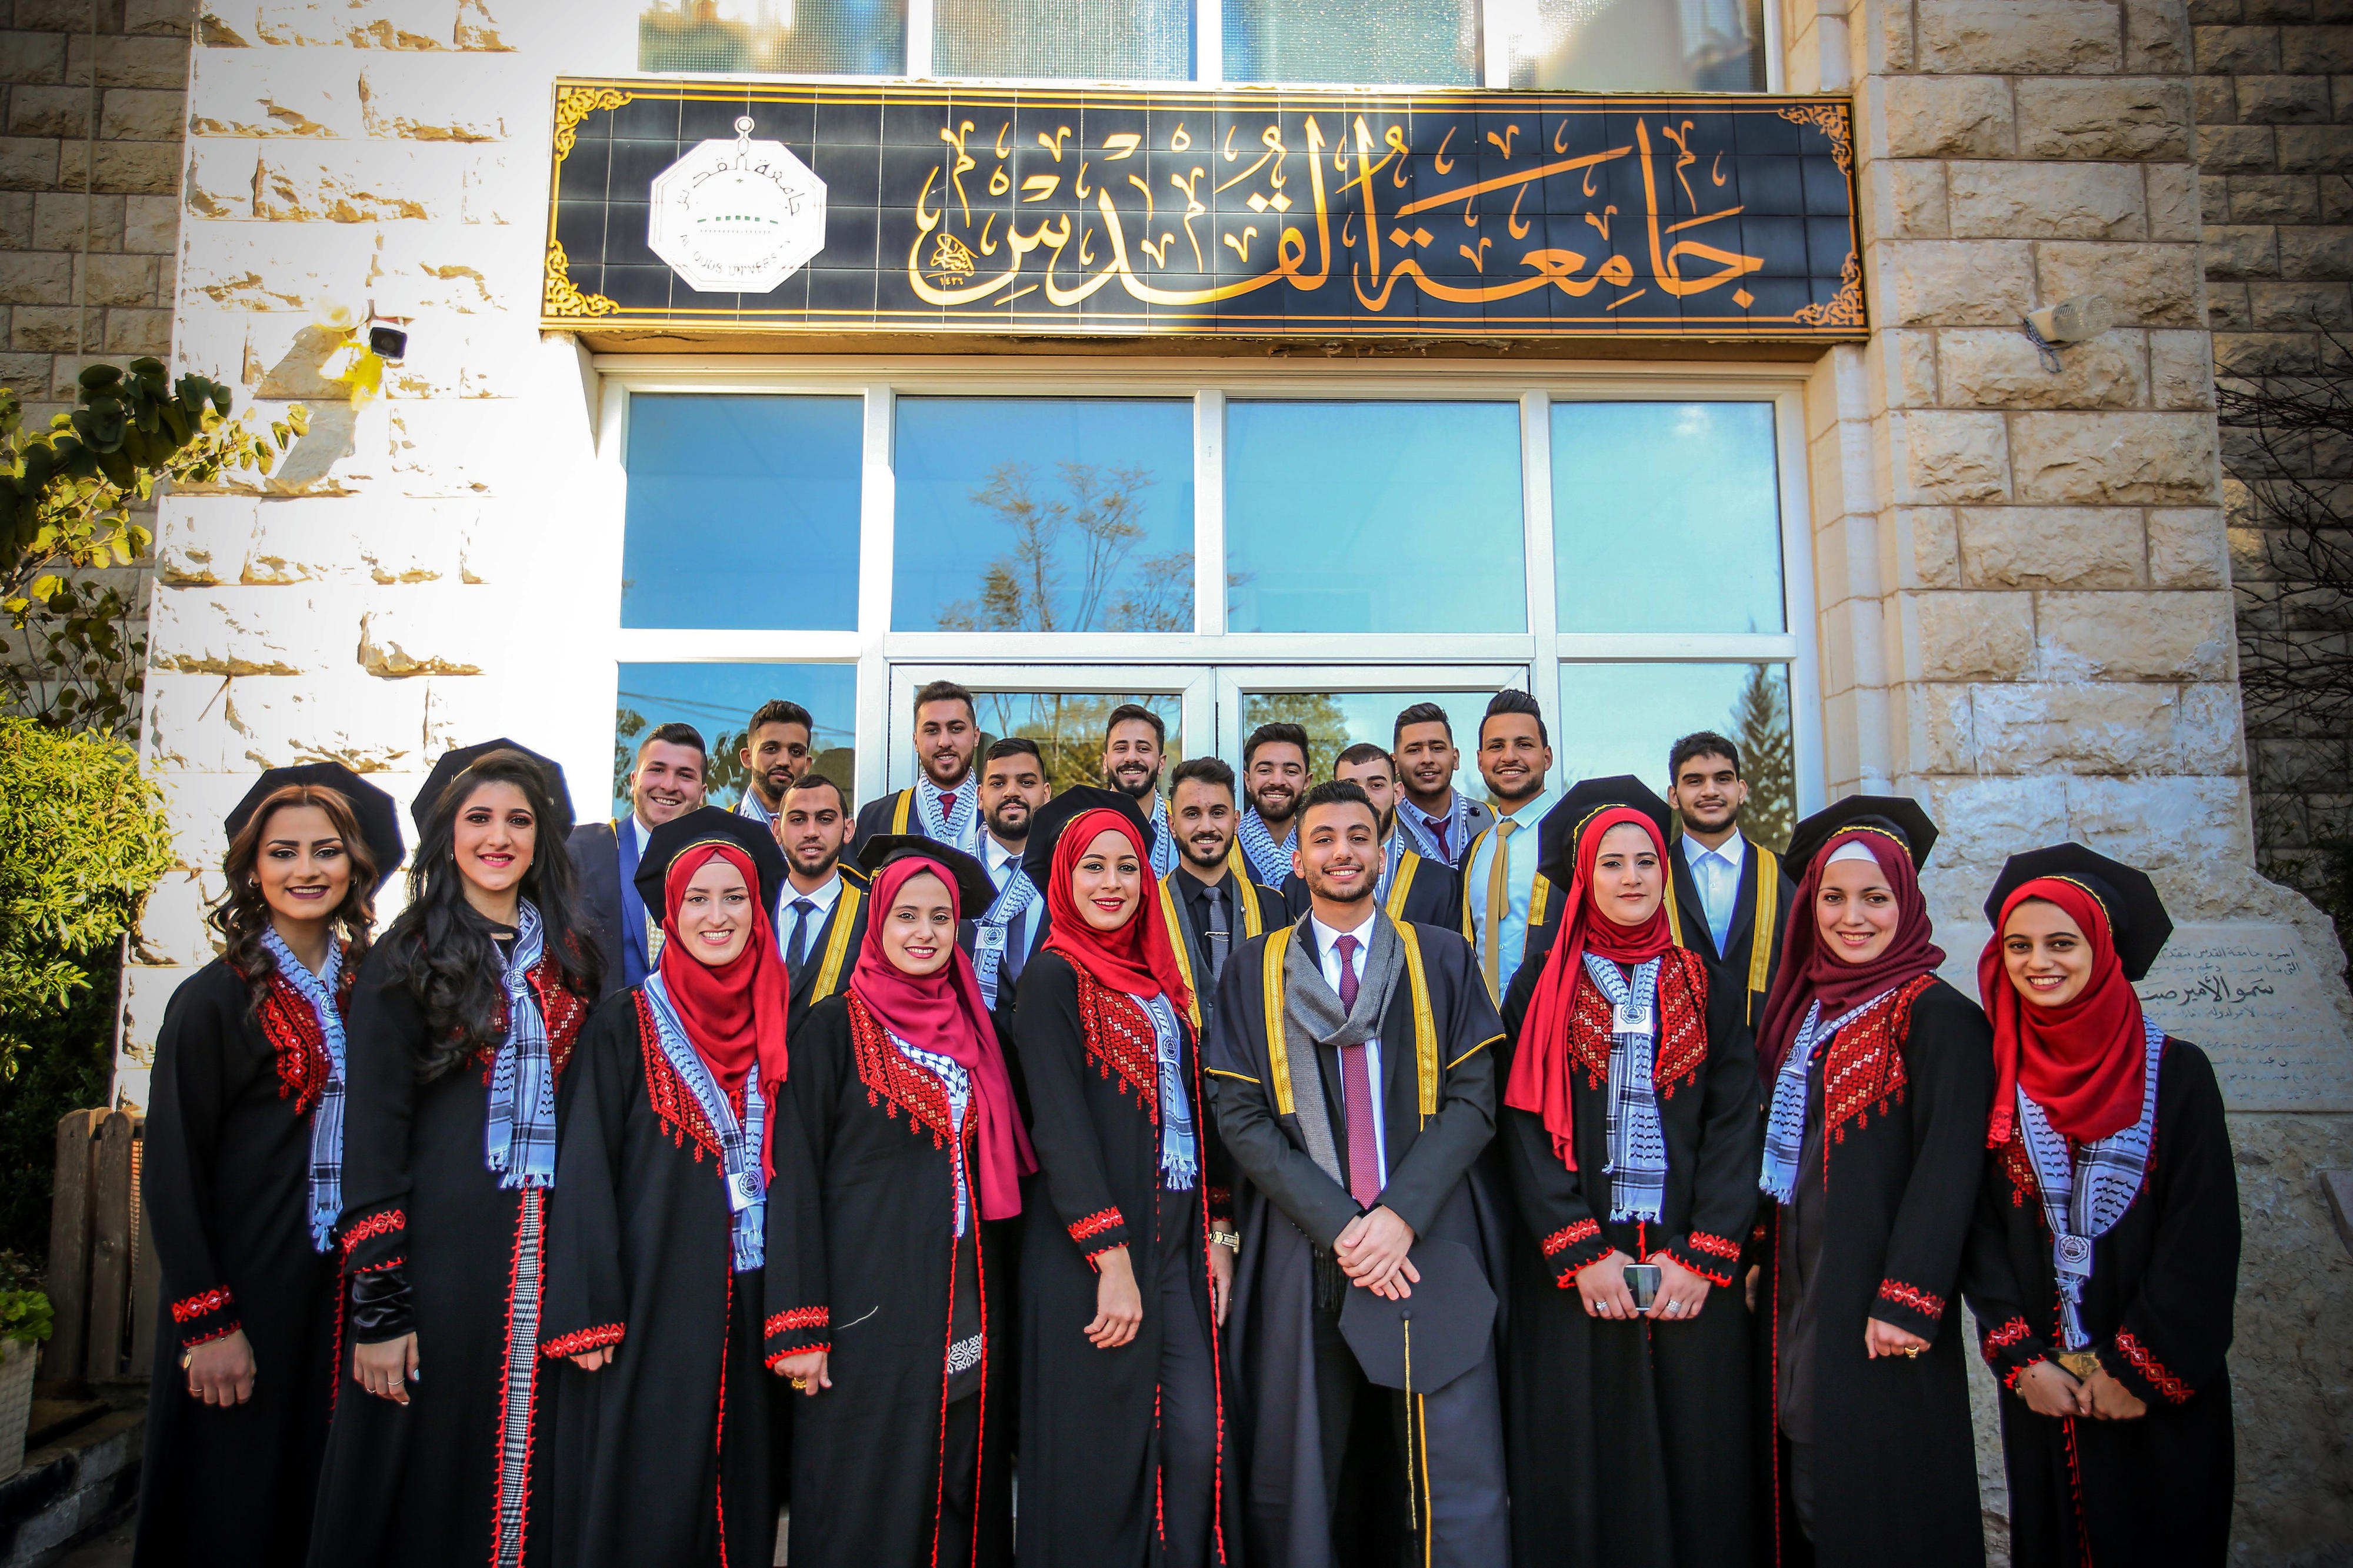 Dual study programmes at Al-Quds University in East Jerusalem: Group photo of the first graduates in February 2020